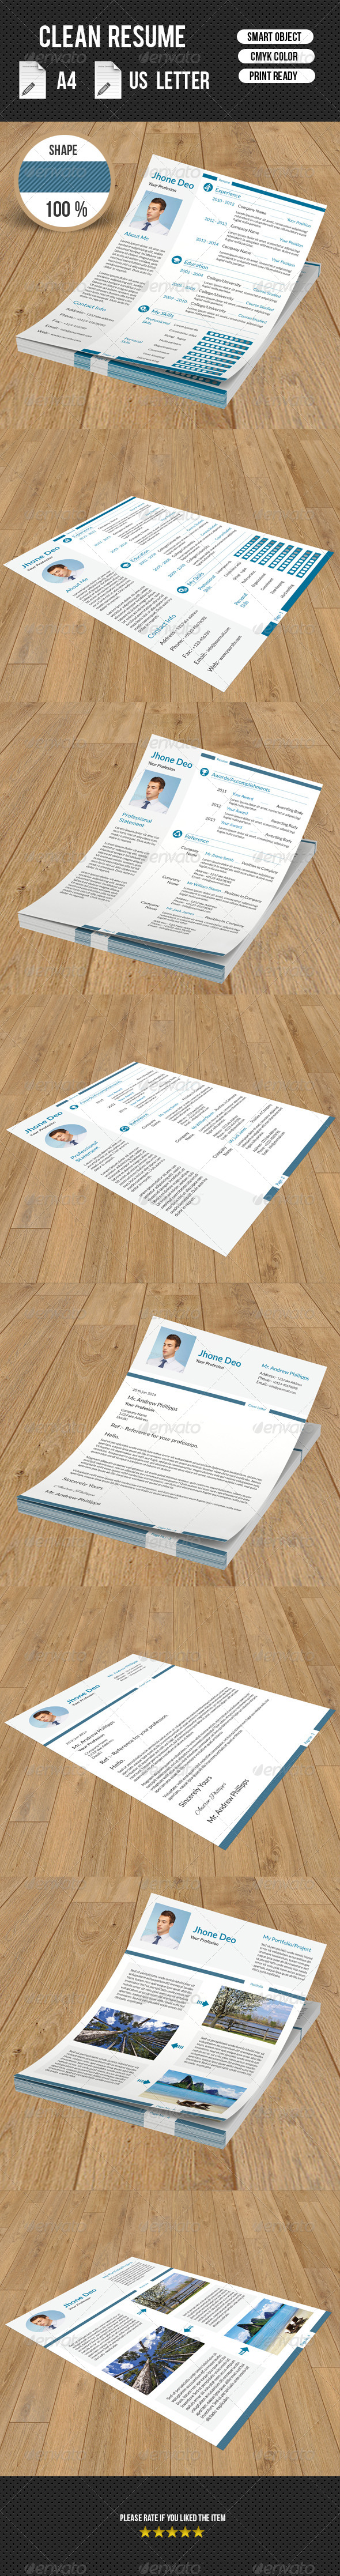 GraphicRiver Clean Resume 8159134